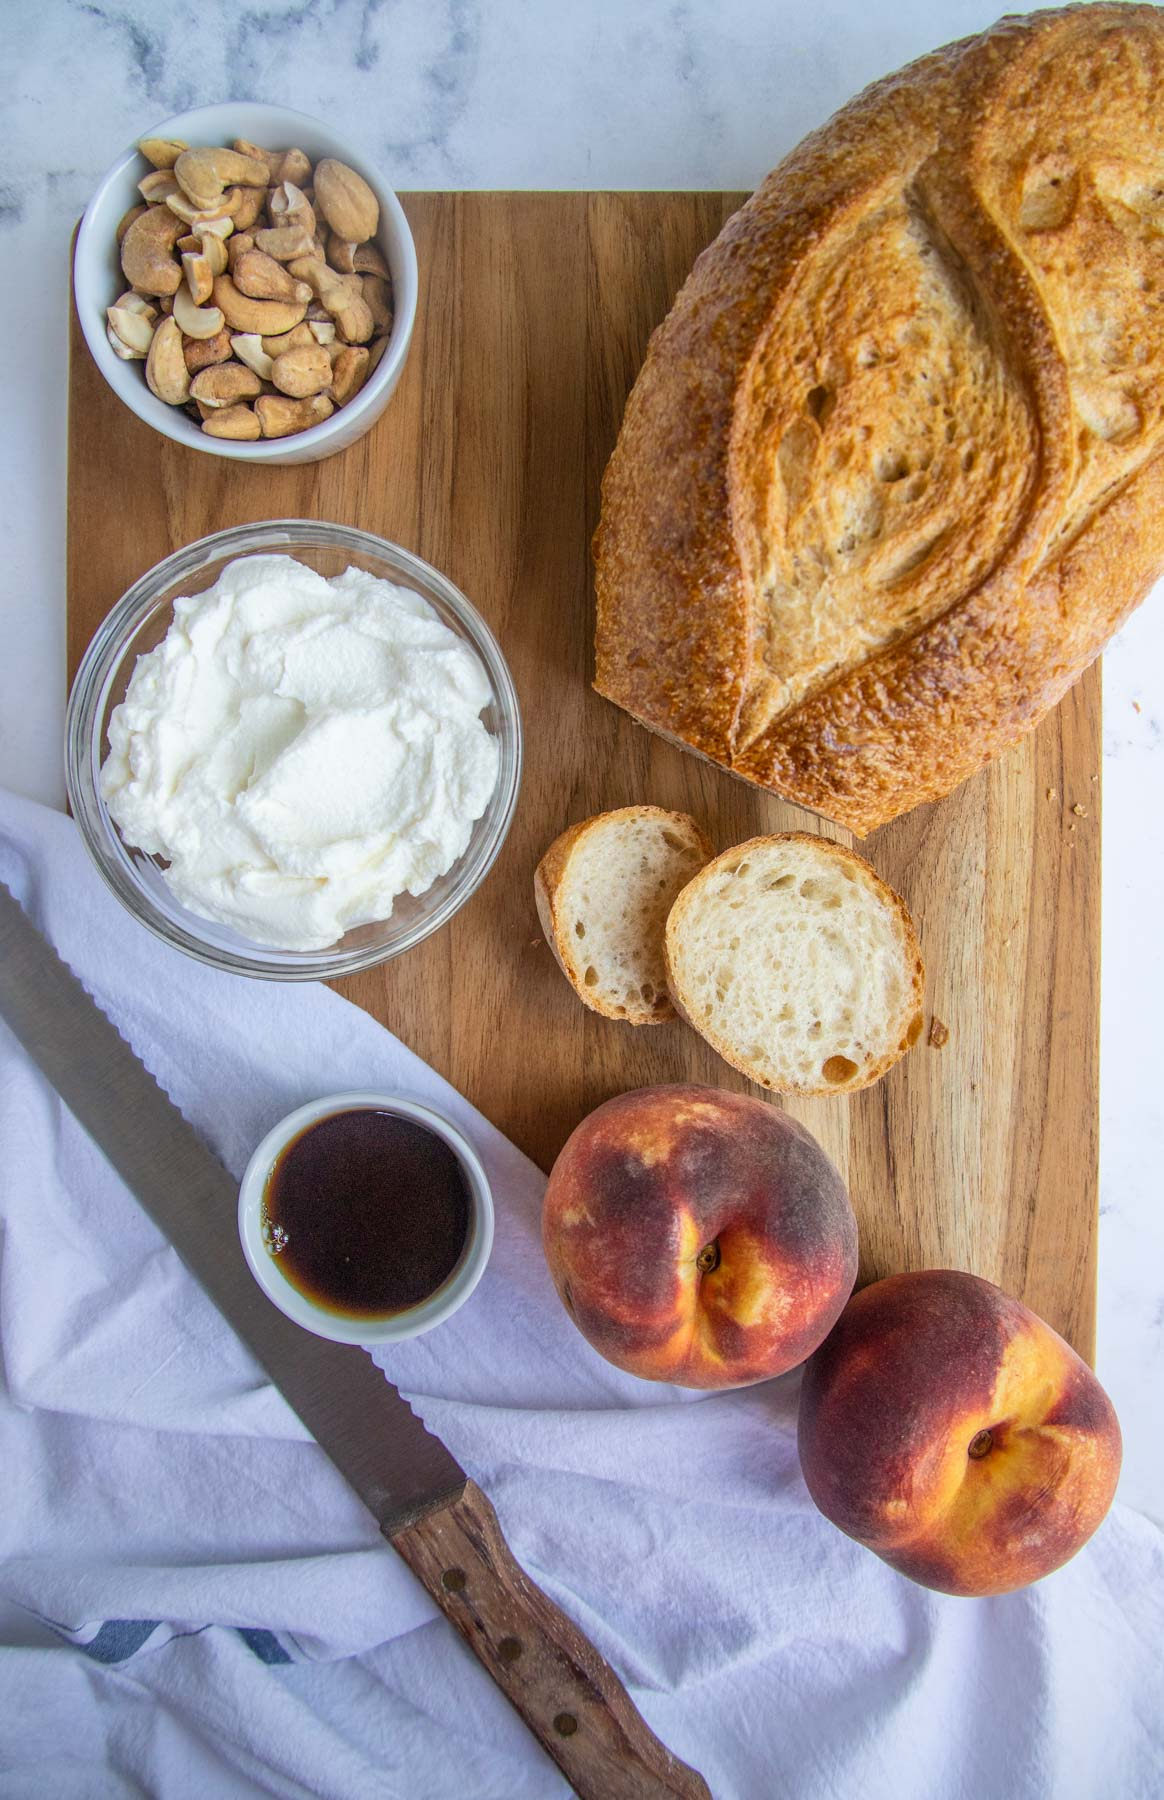 Tartine Ingredients - Sourdough Bread, Peaches, Ricotta, Maple Syrup and Cashews